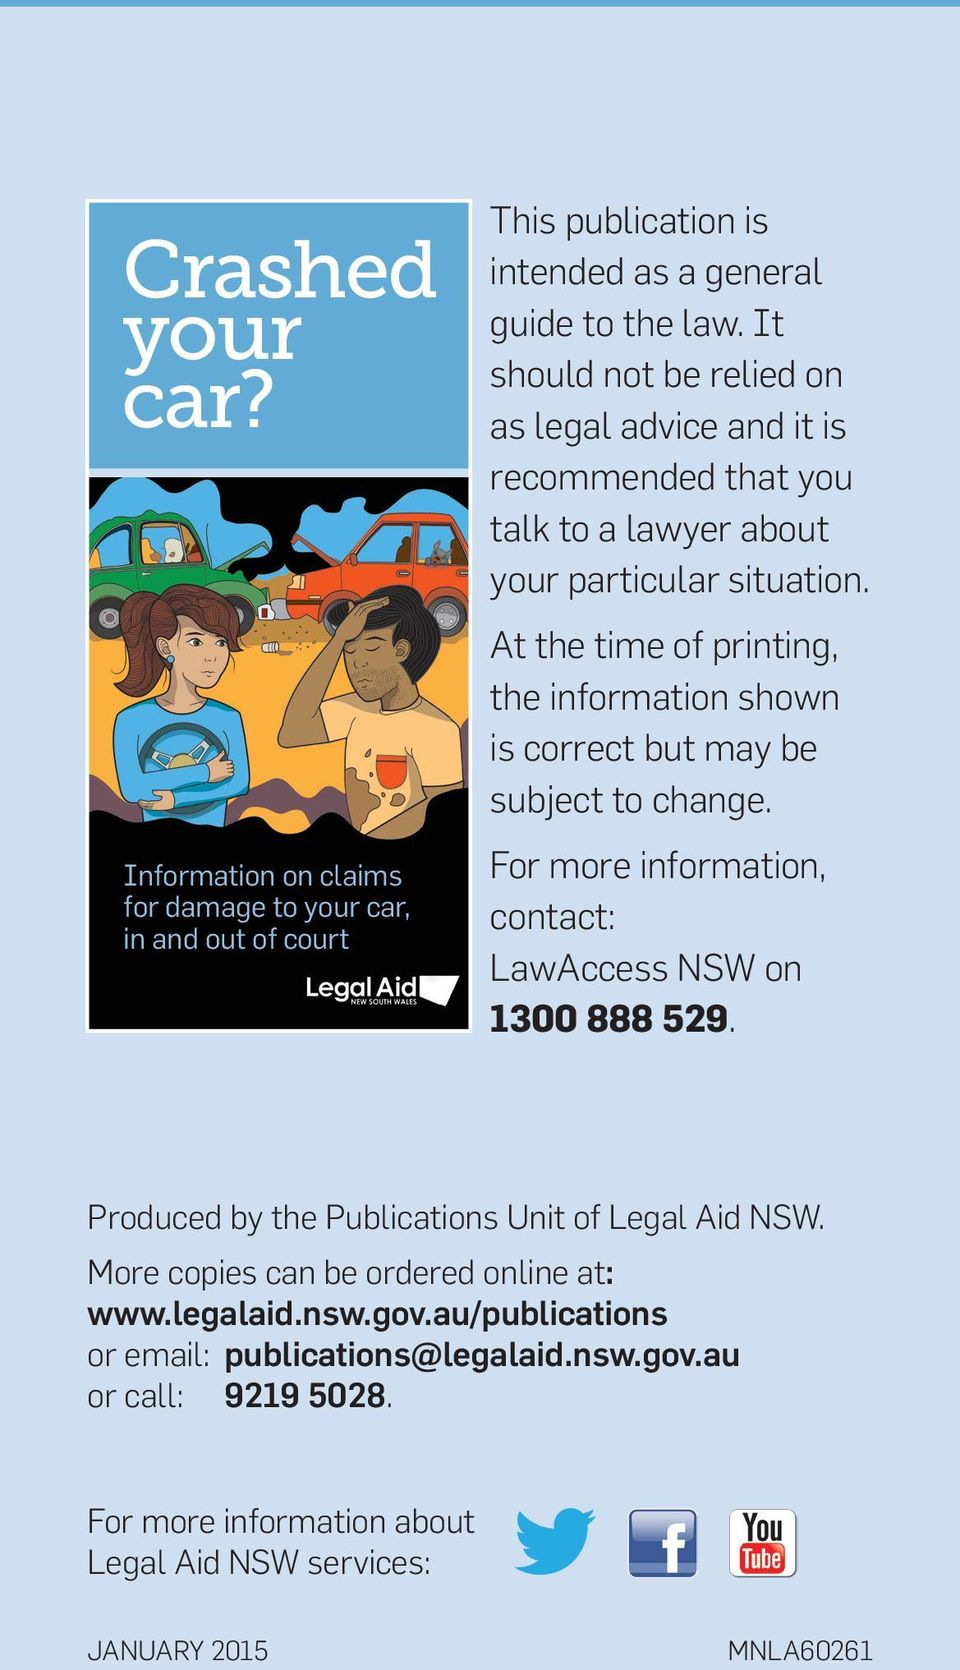 At the time of printing, the information shown is correct but may be subject to change. For more information, contact: LawAccess NSW on 1300 888 529.